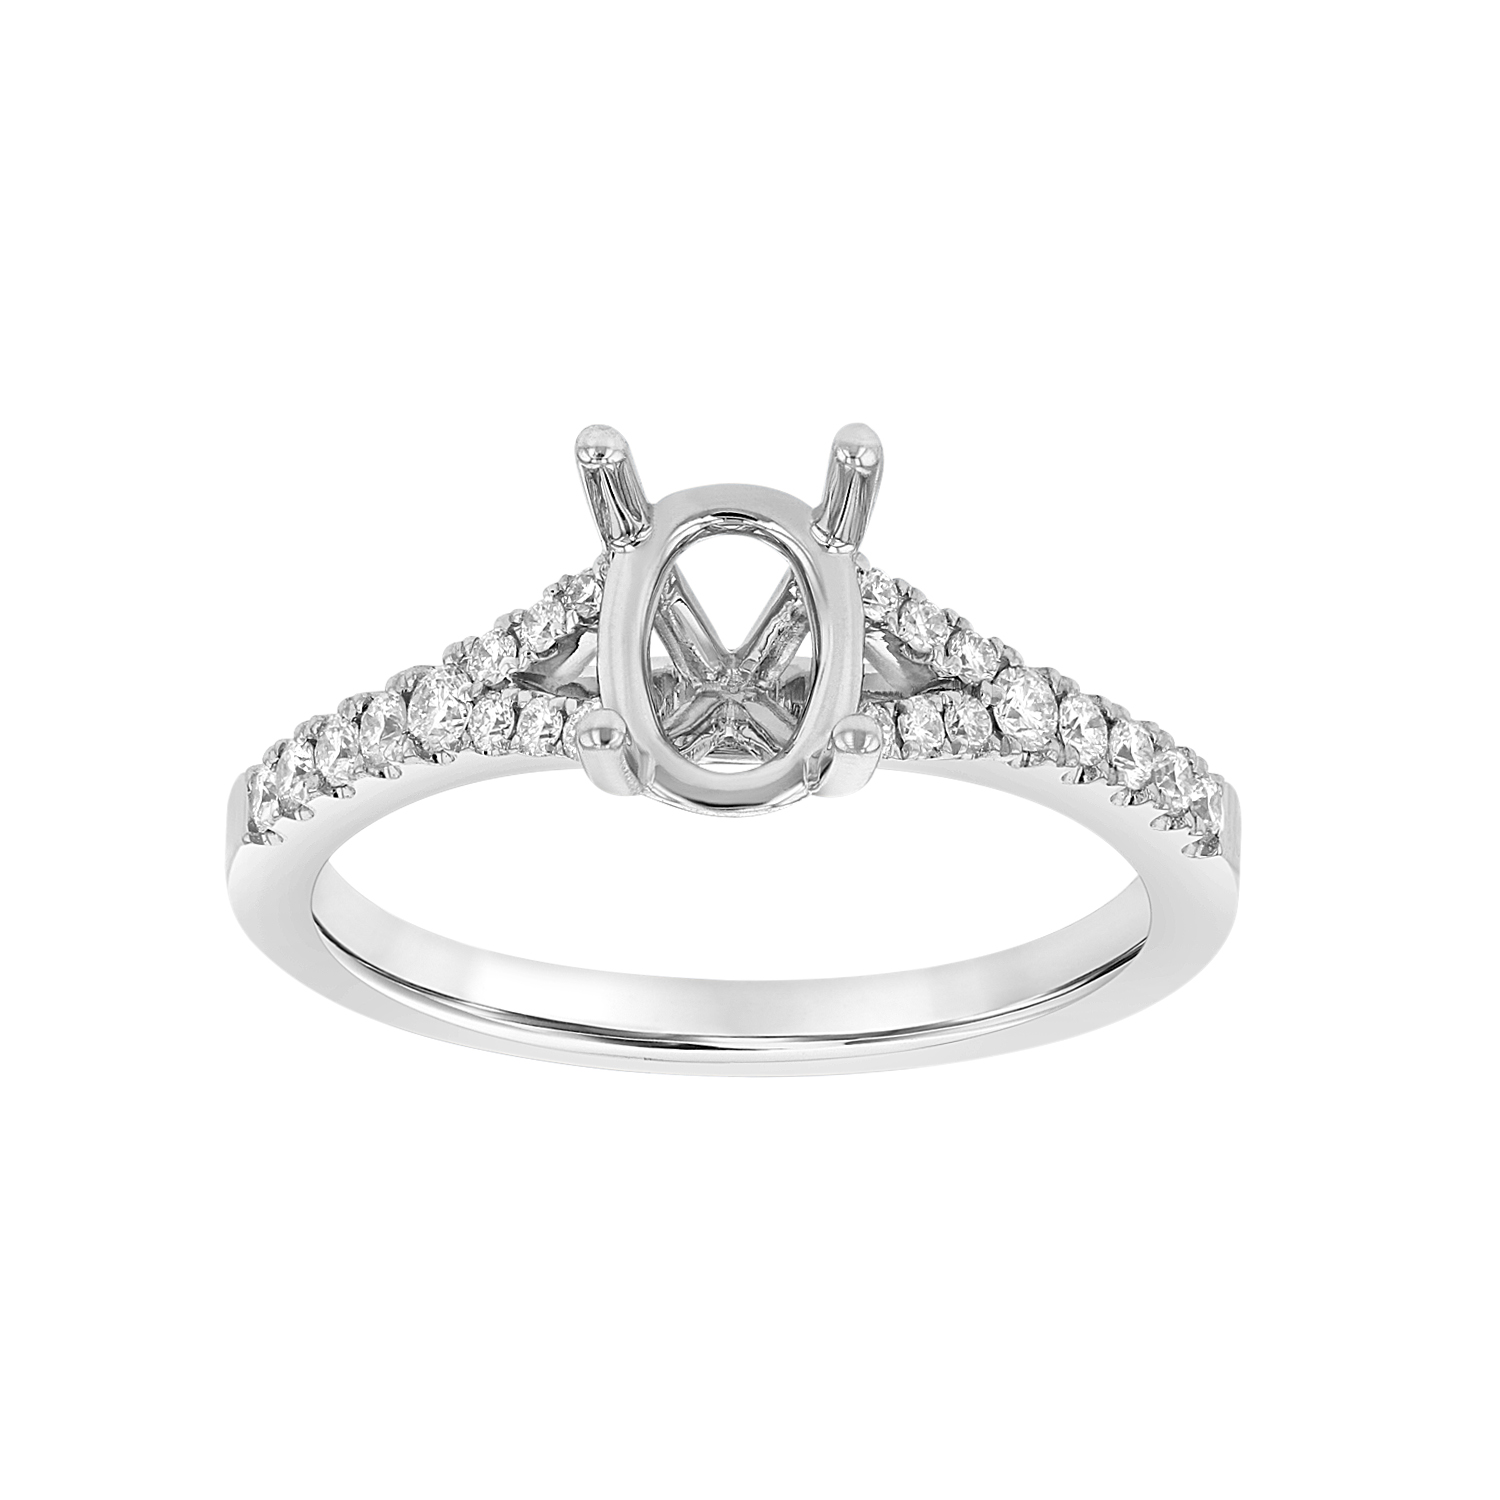 View 0.28ctw Diamond Semi Mount Engagement Ring in 18k White Gold